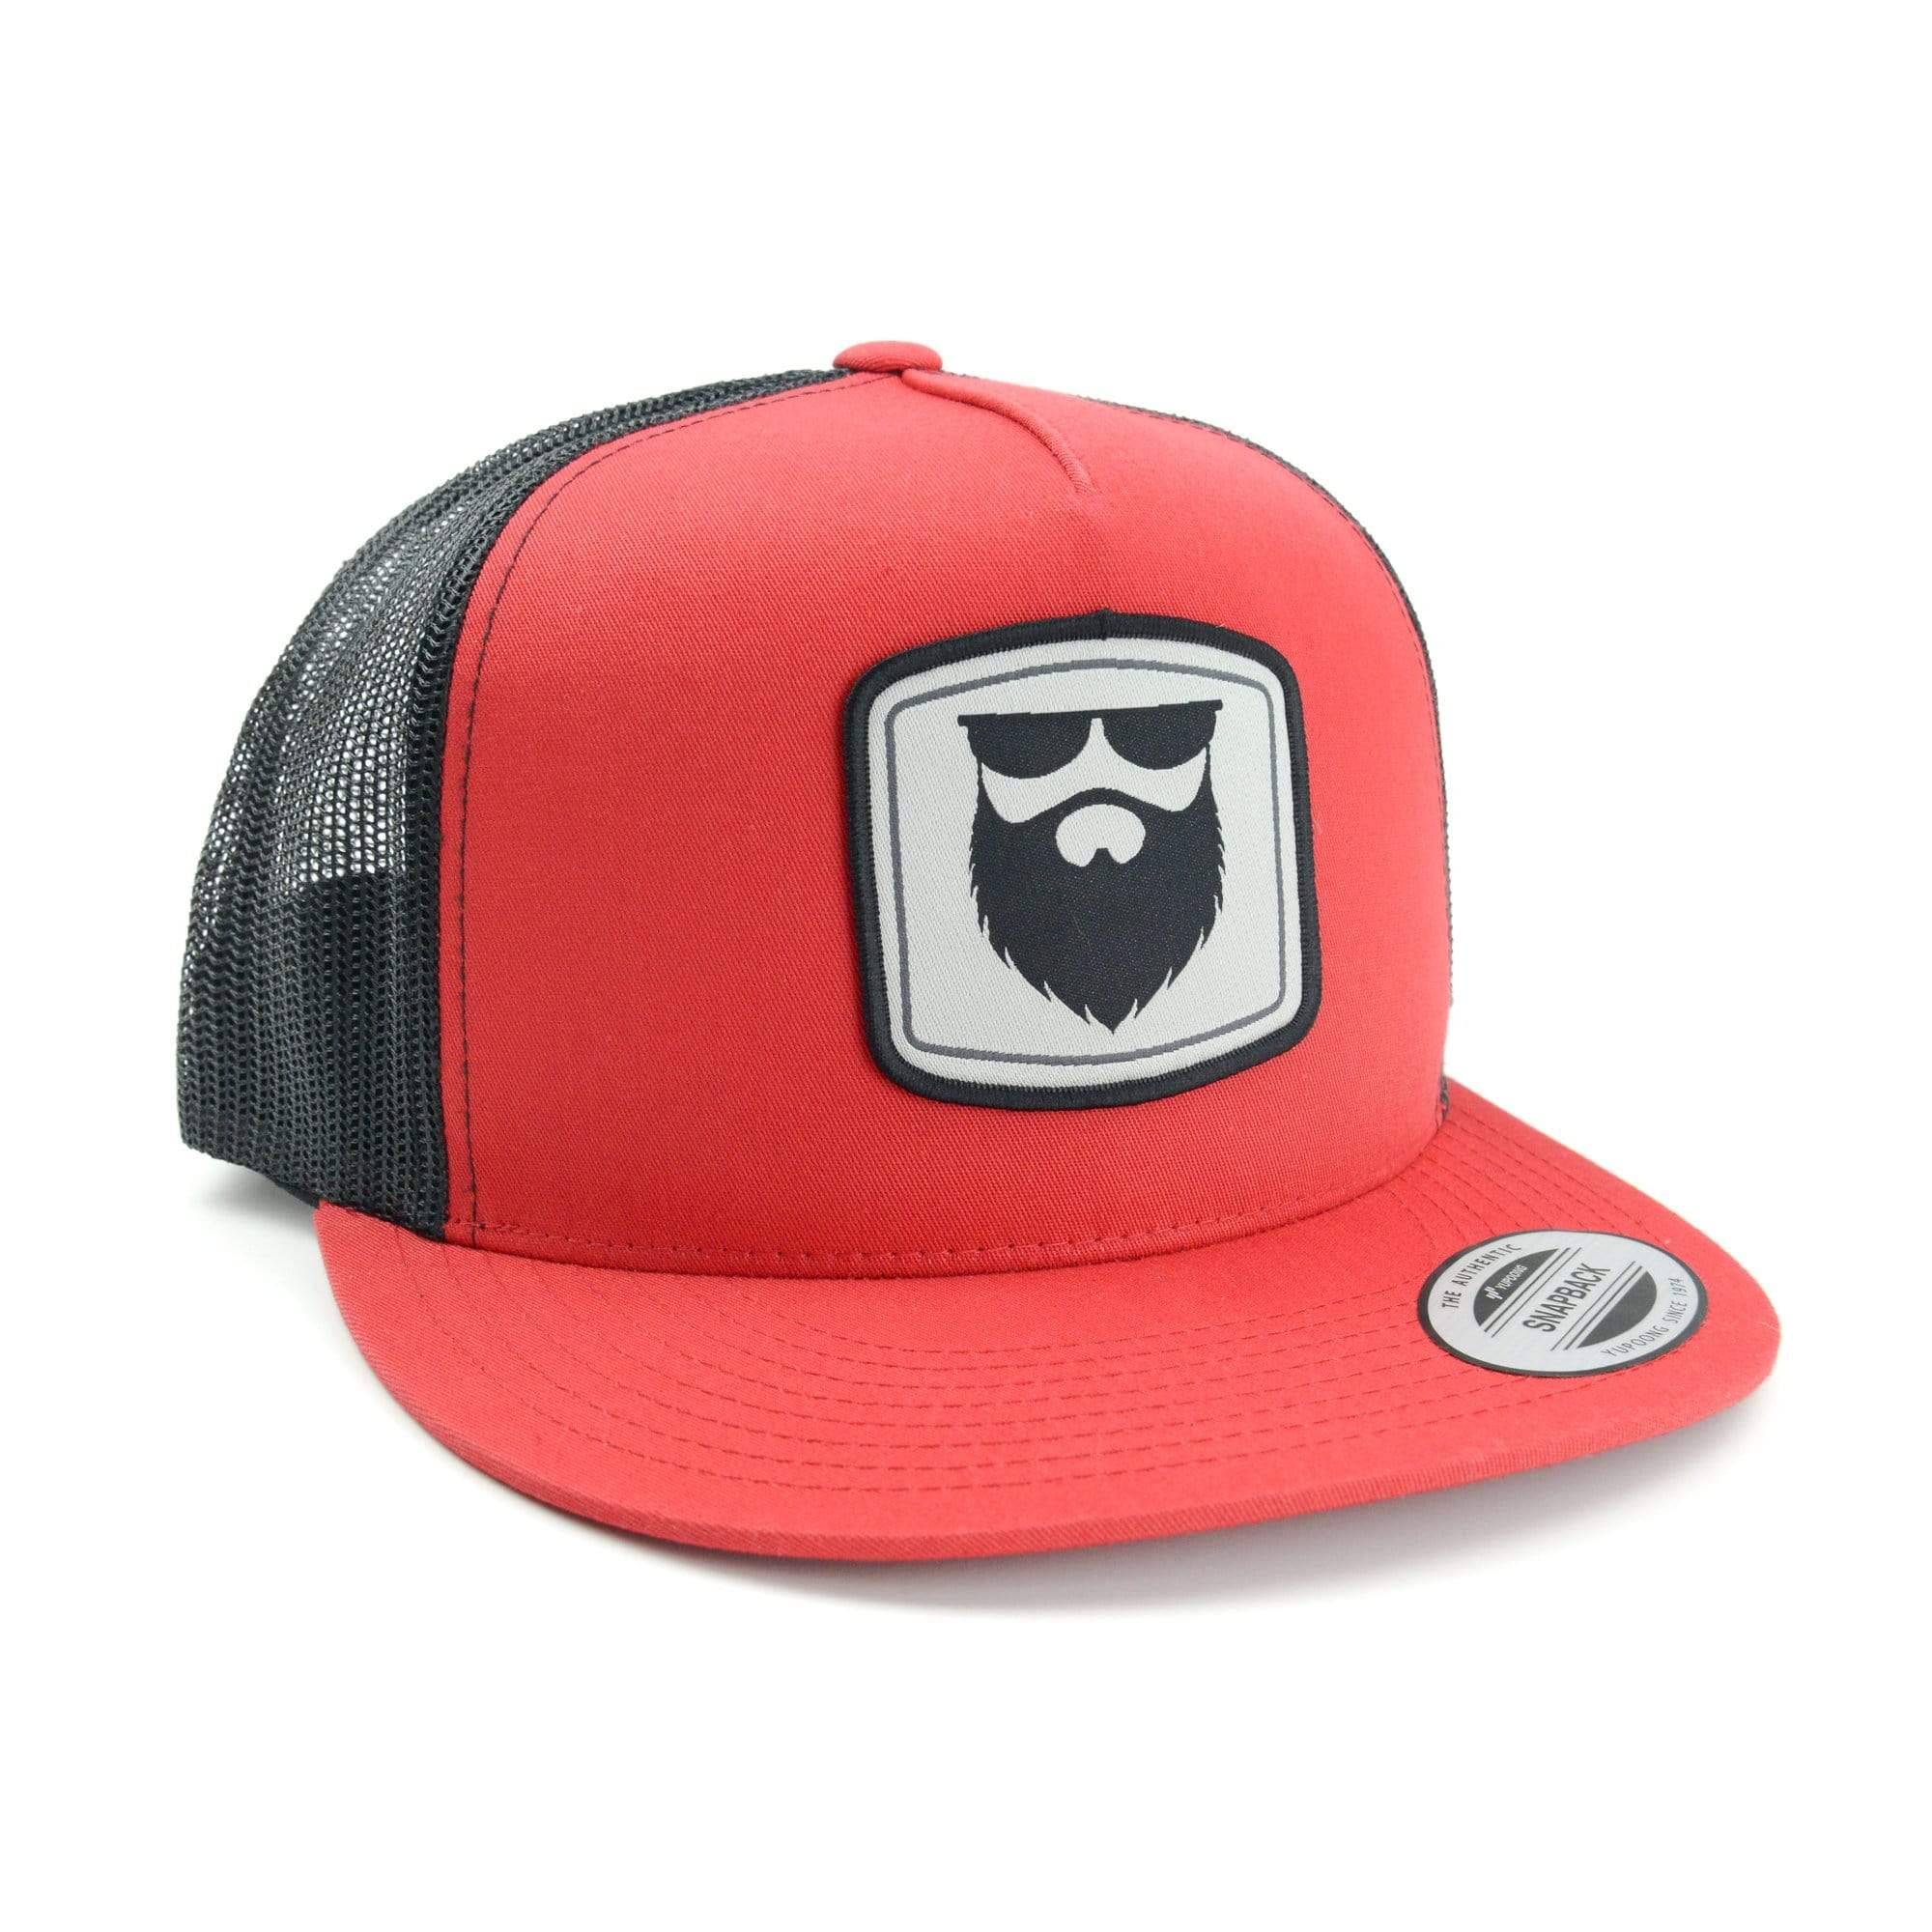 Beard Gear Mesh Trucker Snapback - Red/Black